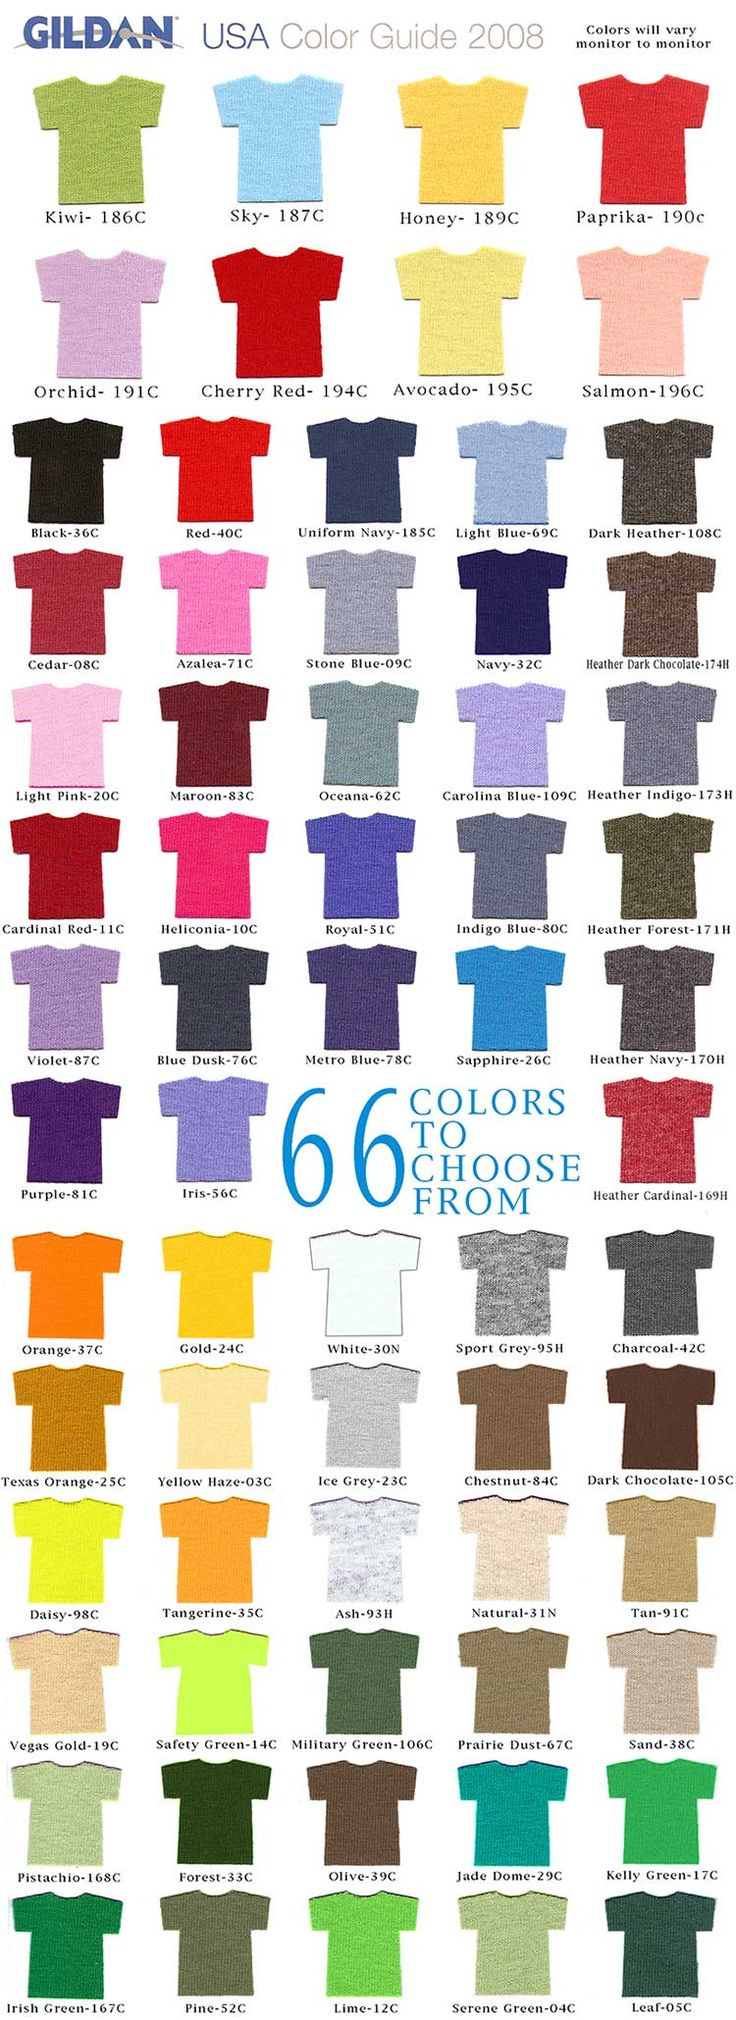 T Shirt Colors Gildan Colorful Shirts Shirts Gildan